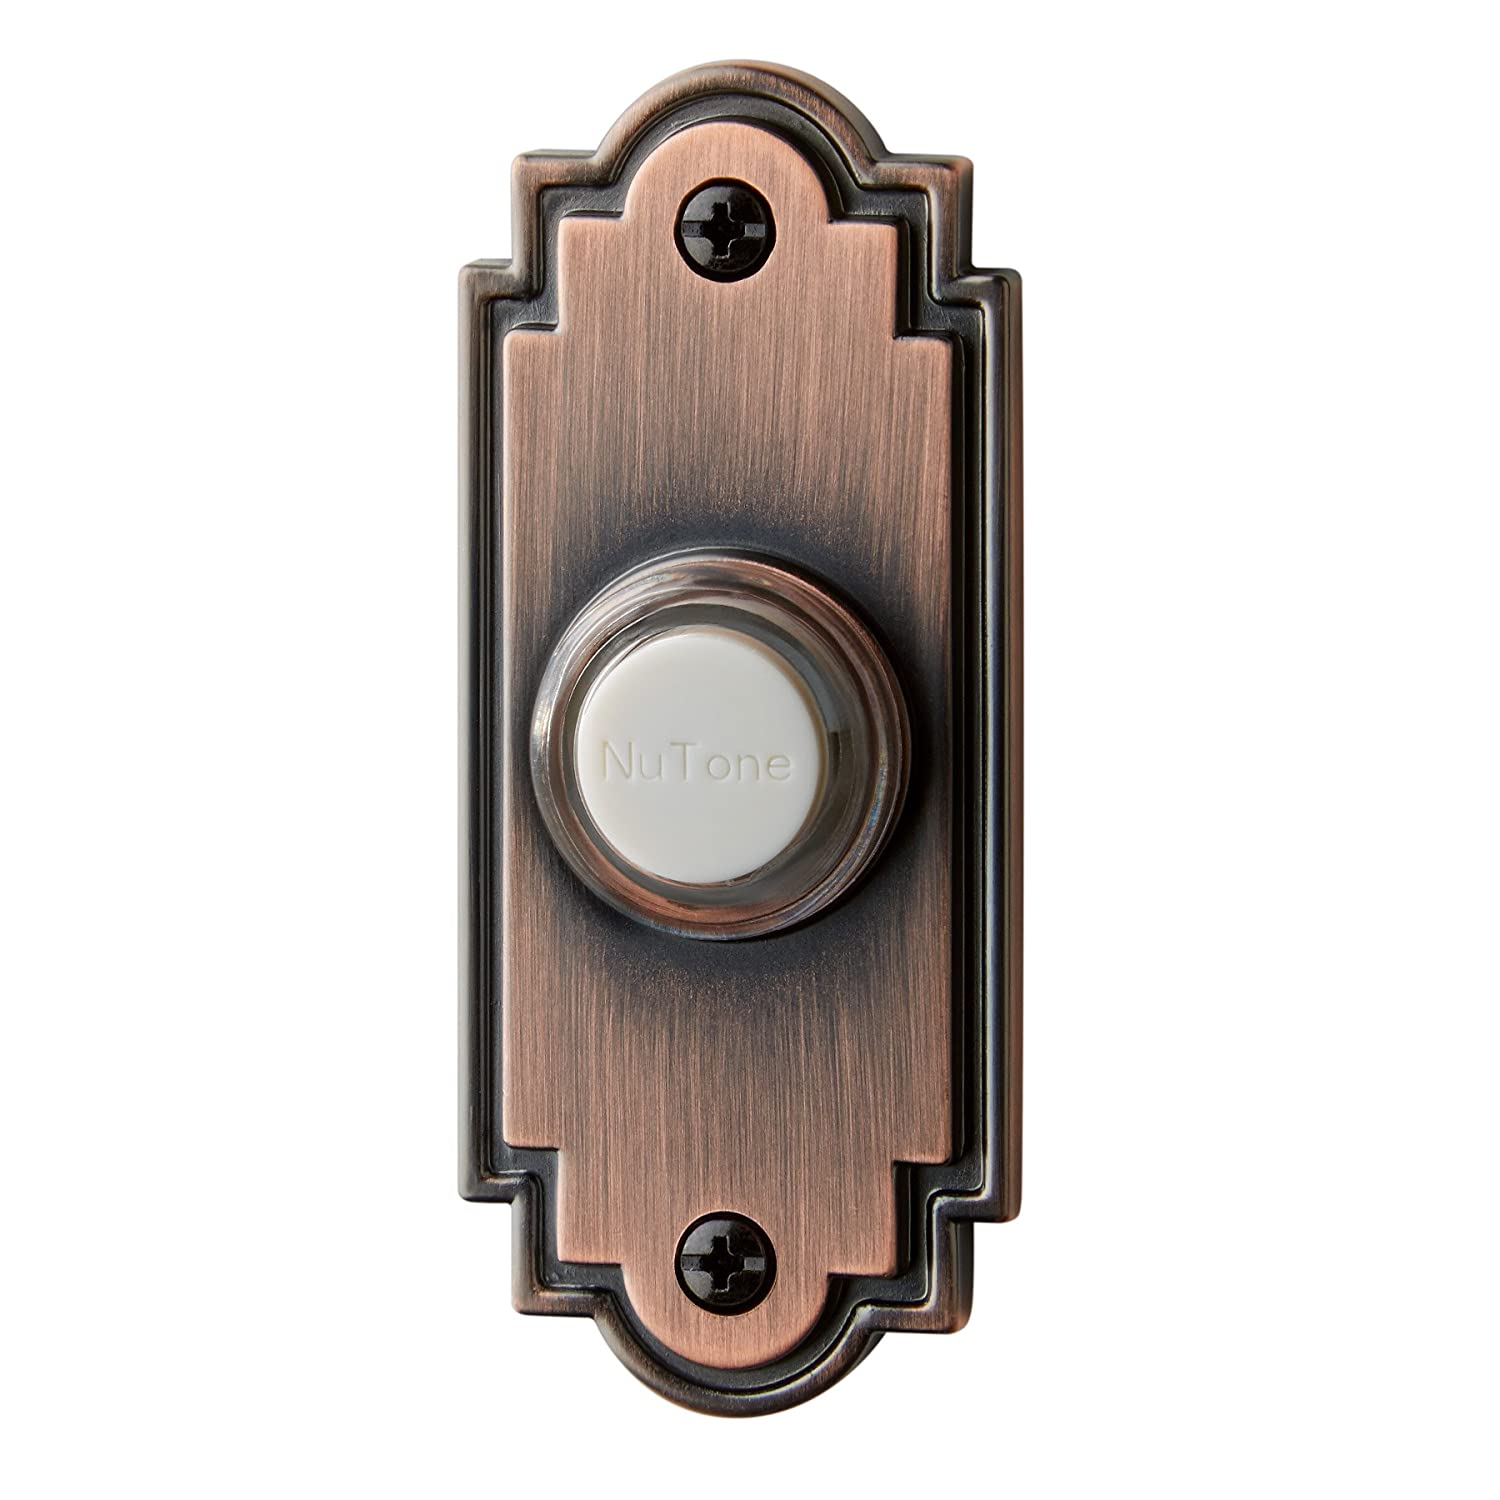 NuTone PB15LBR Wired Lighted Door Chime Push Button, Oil Rubbed Bronze    Doorbell Push Buttons   Amazon.com